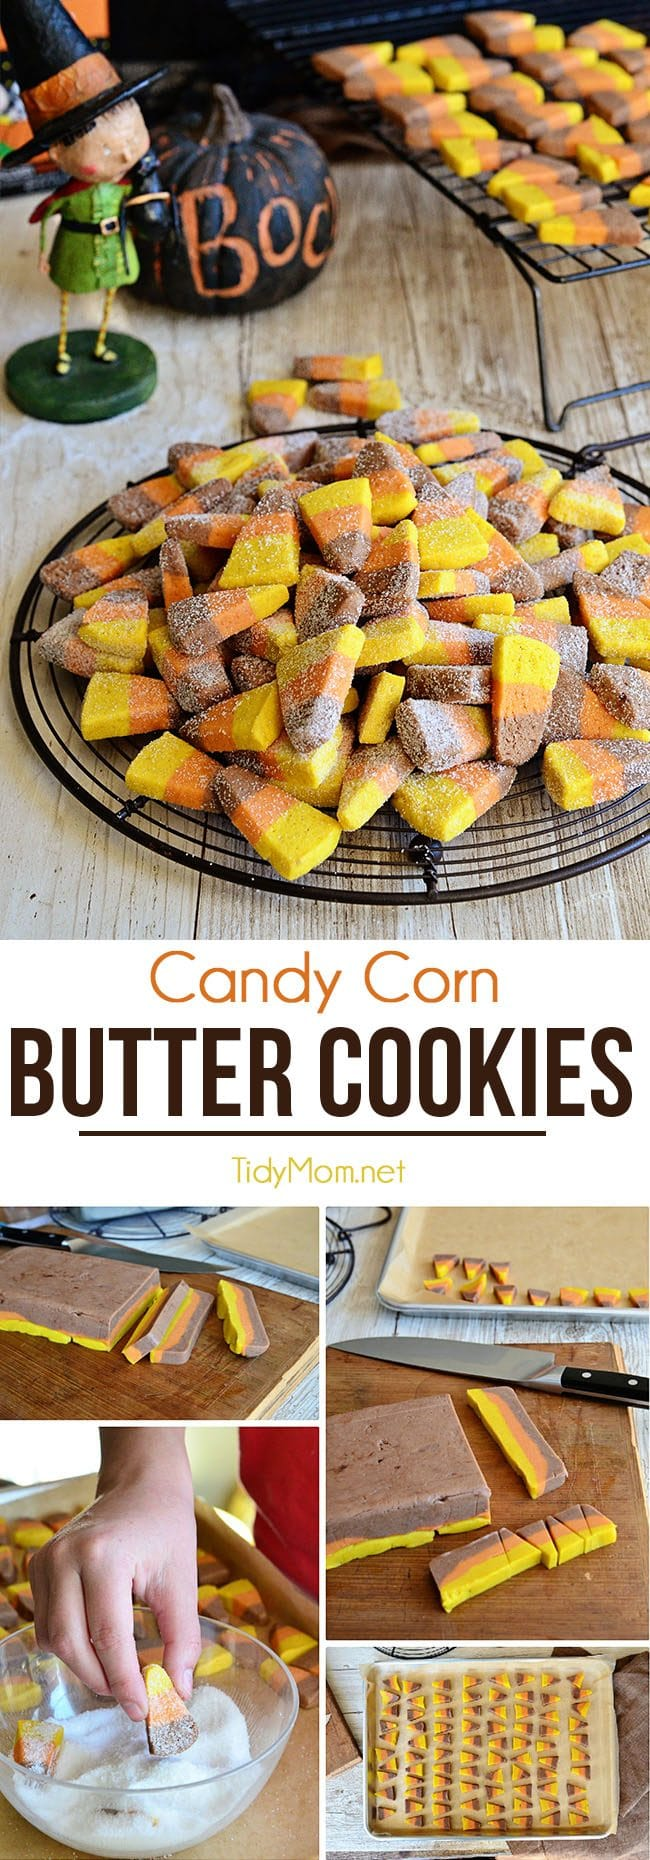 These candy corn shaped cookies come together in a flash…. no rolling or cookie cutters involved! Candy Corn Butter Cookie recipe and tutorial at TidyMom.net